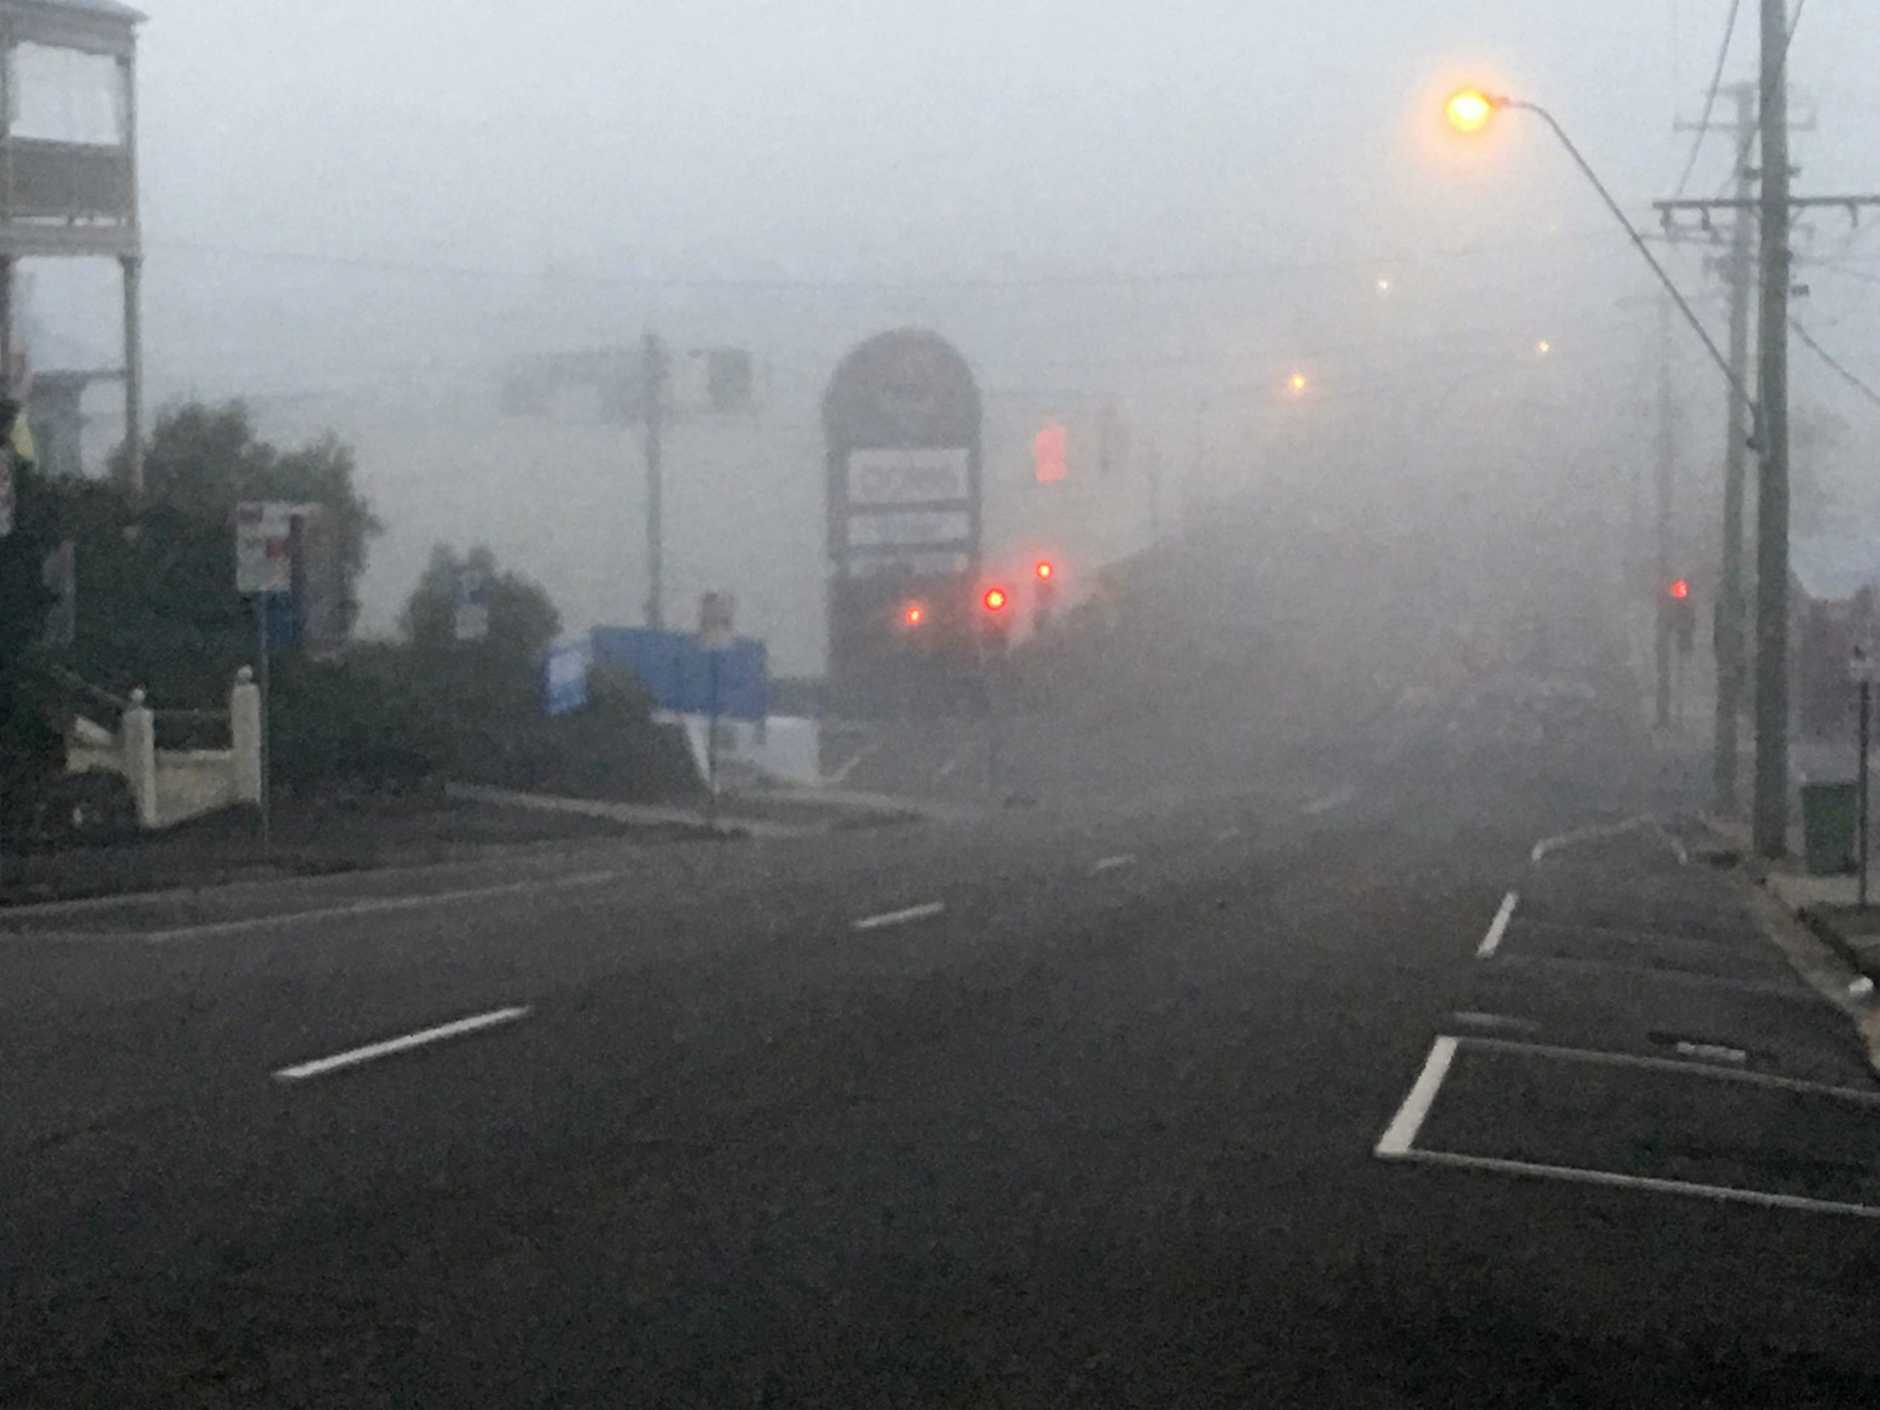 Photo taken on Nash Street at 6:30am shows thick fog hit the Gympie region.